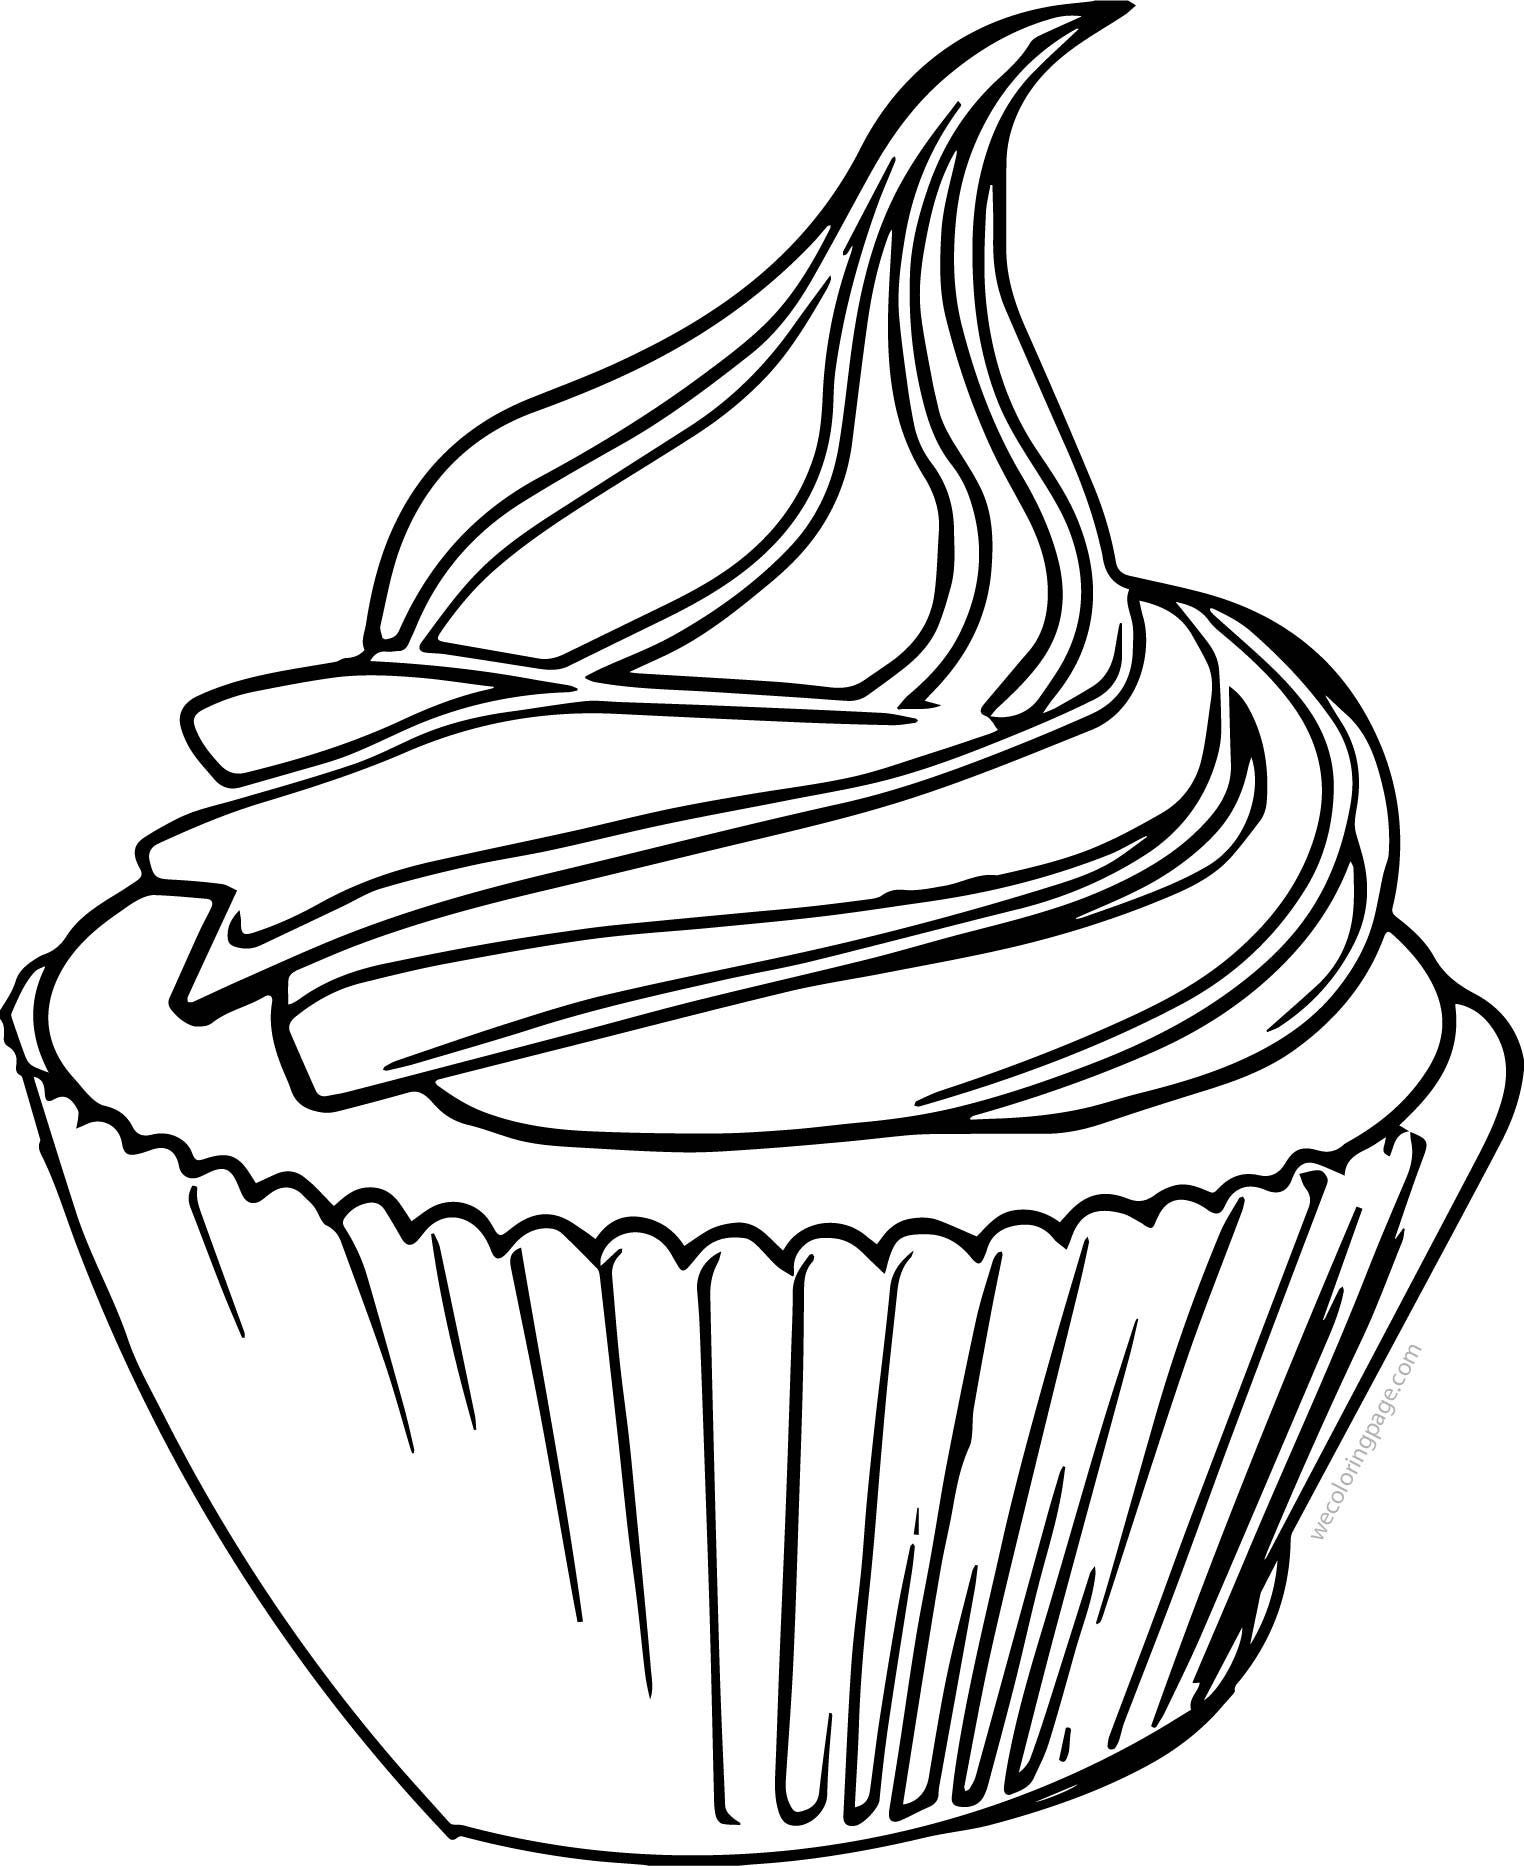 Cupcake Cup Cake We Line Coloring Page